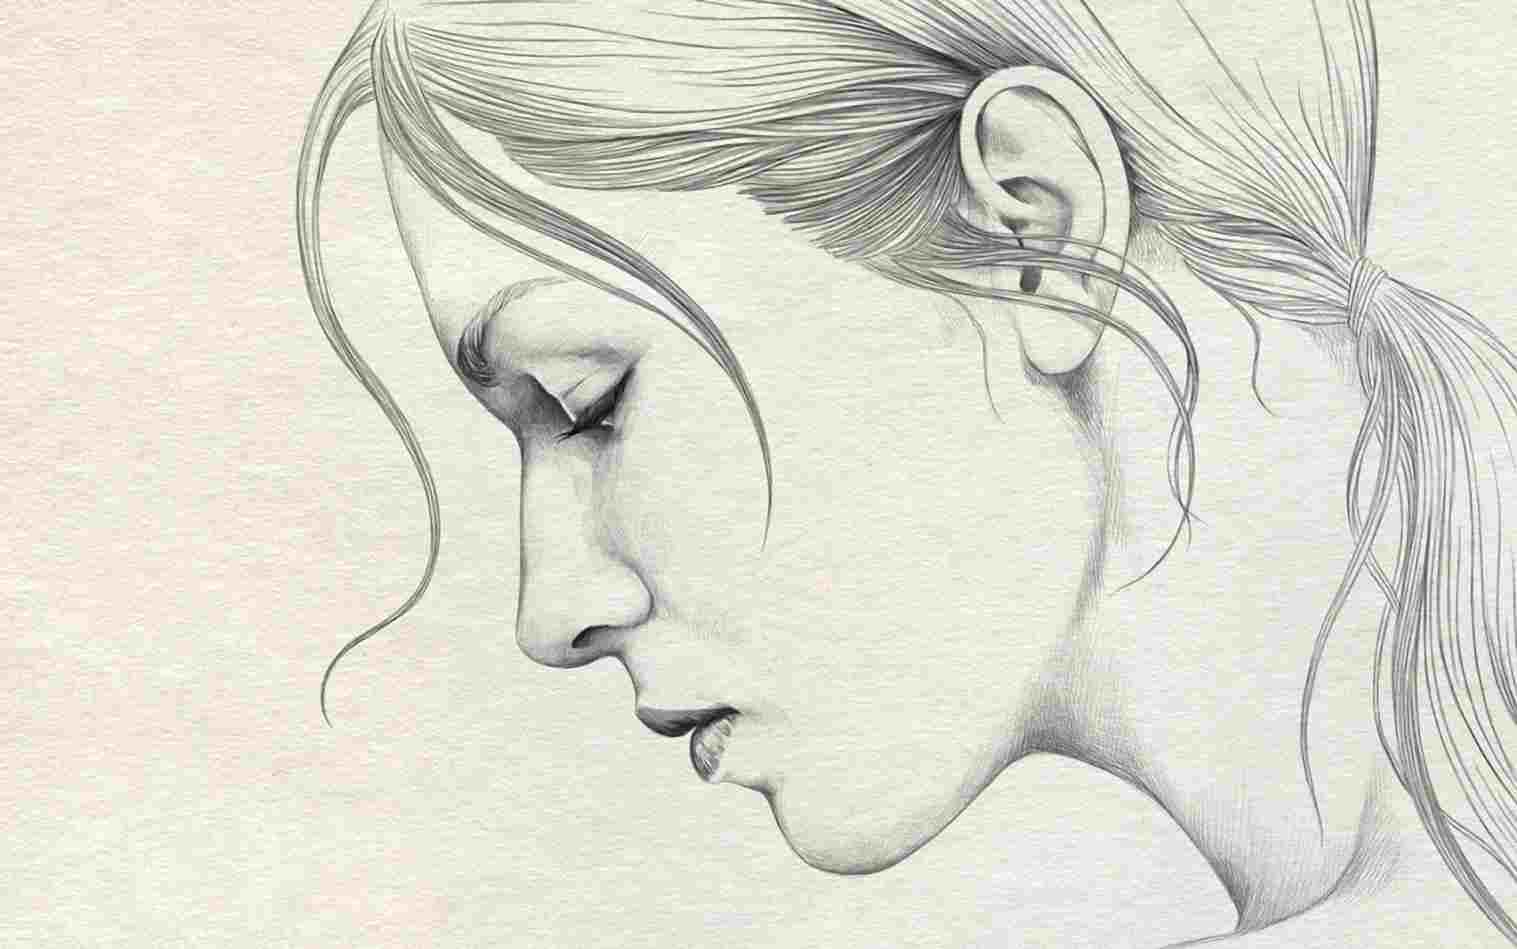 10 Wonderful Ideas For Drawings In Pencil sketch pencil drawing ideas for beginner for beginners pencil